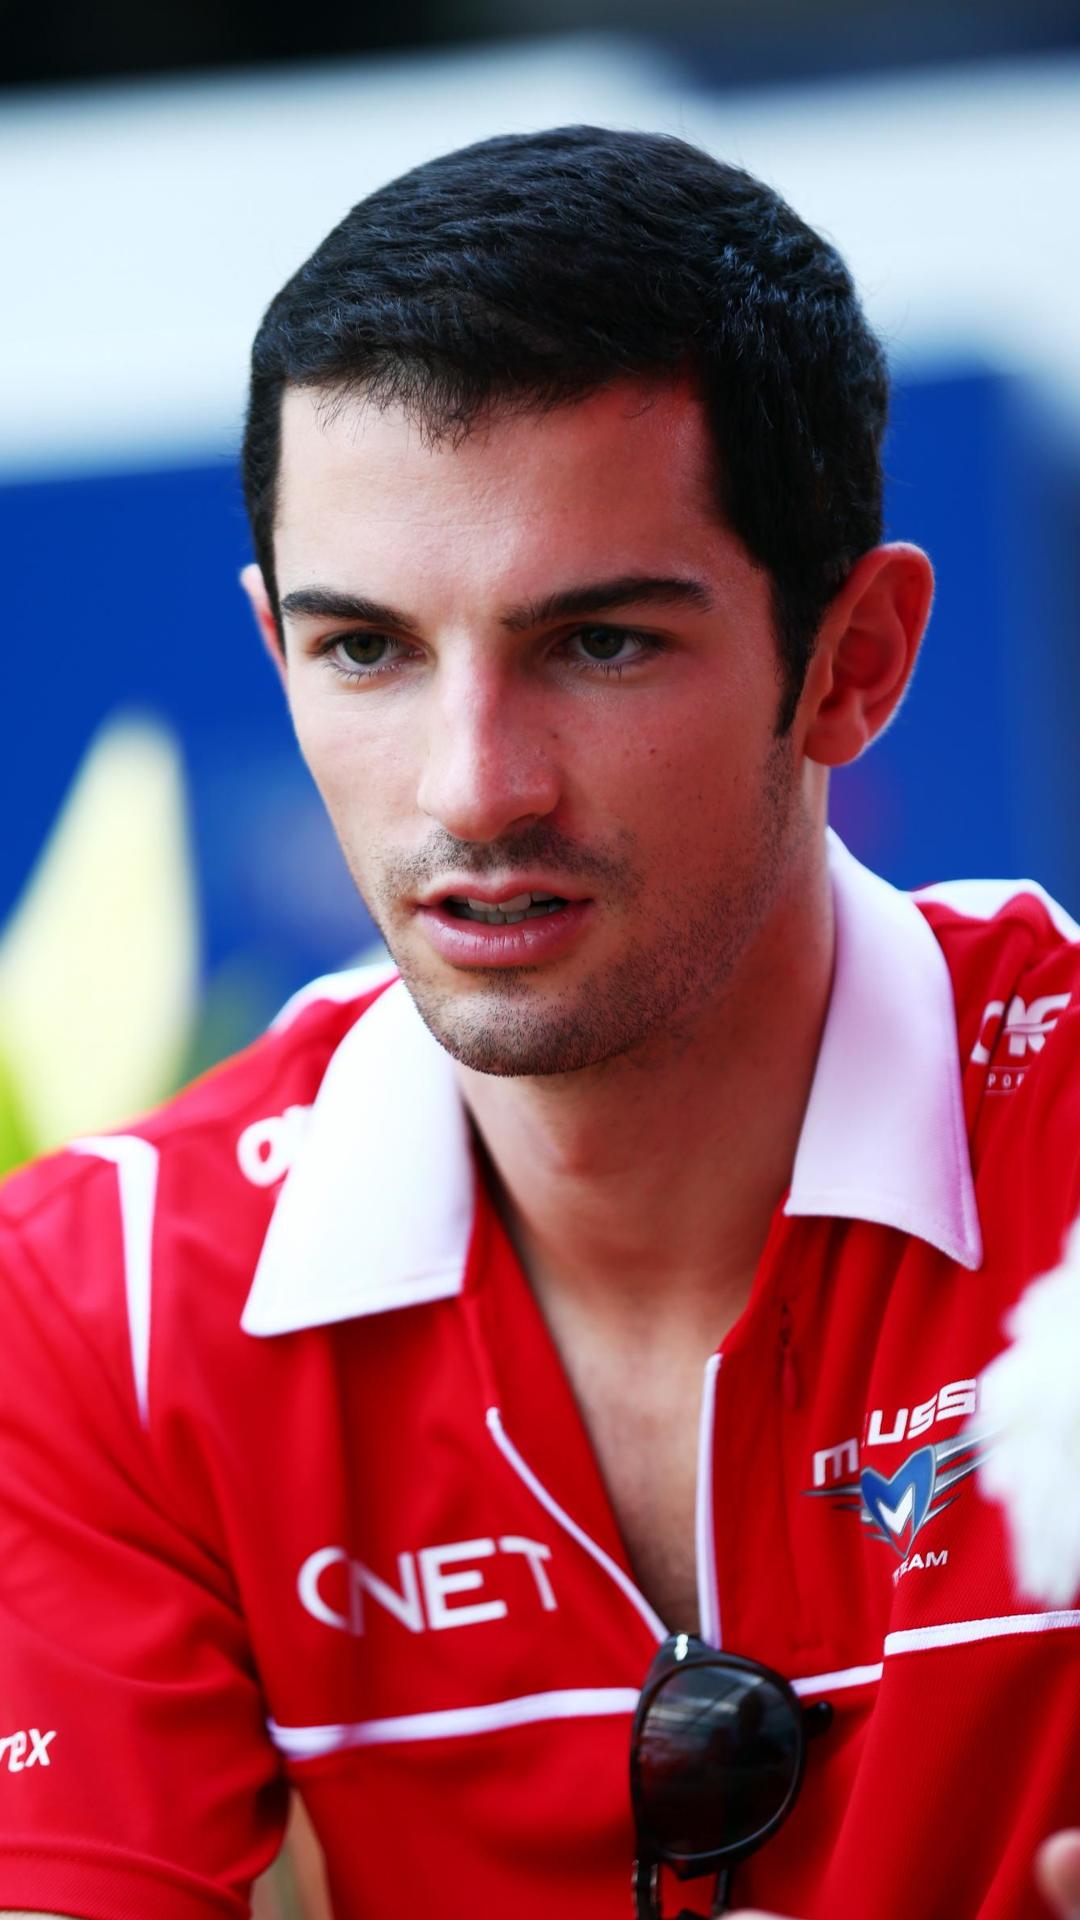 Marussia enters Rossi in Bianchi's place at Sochi